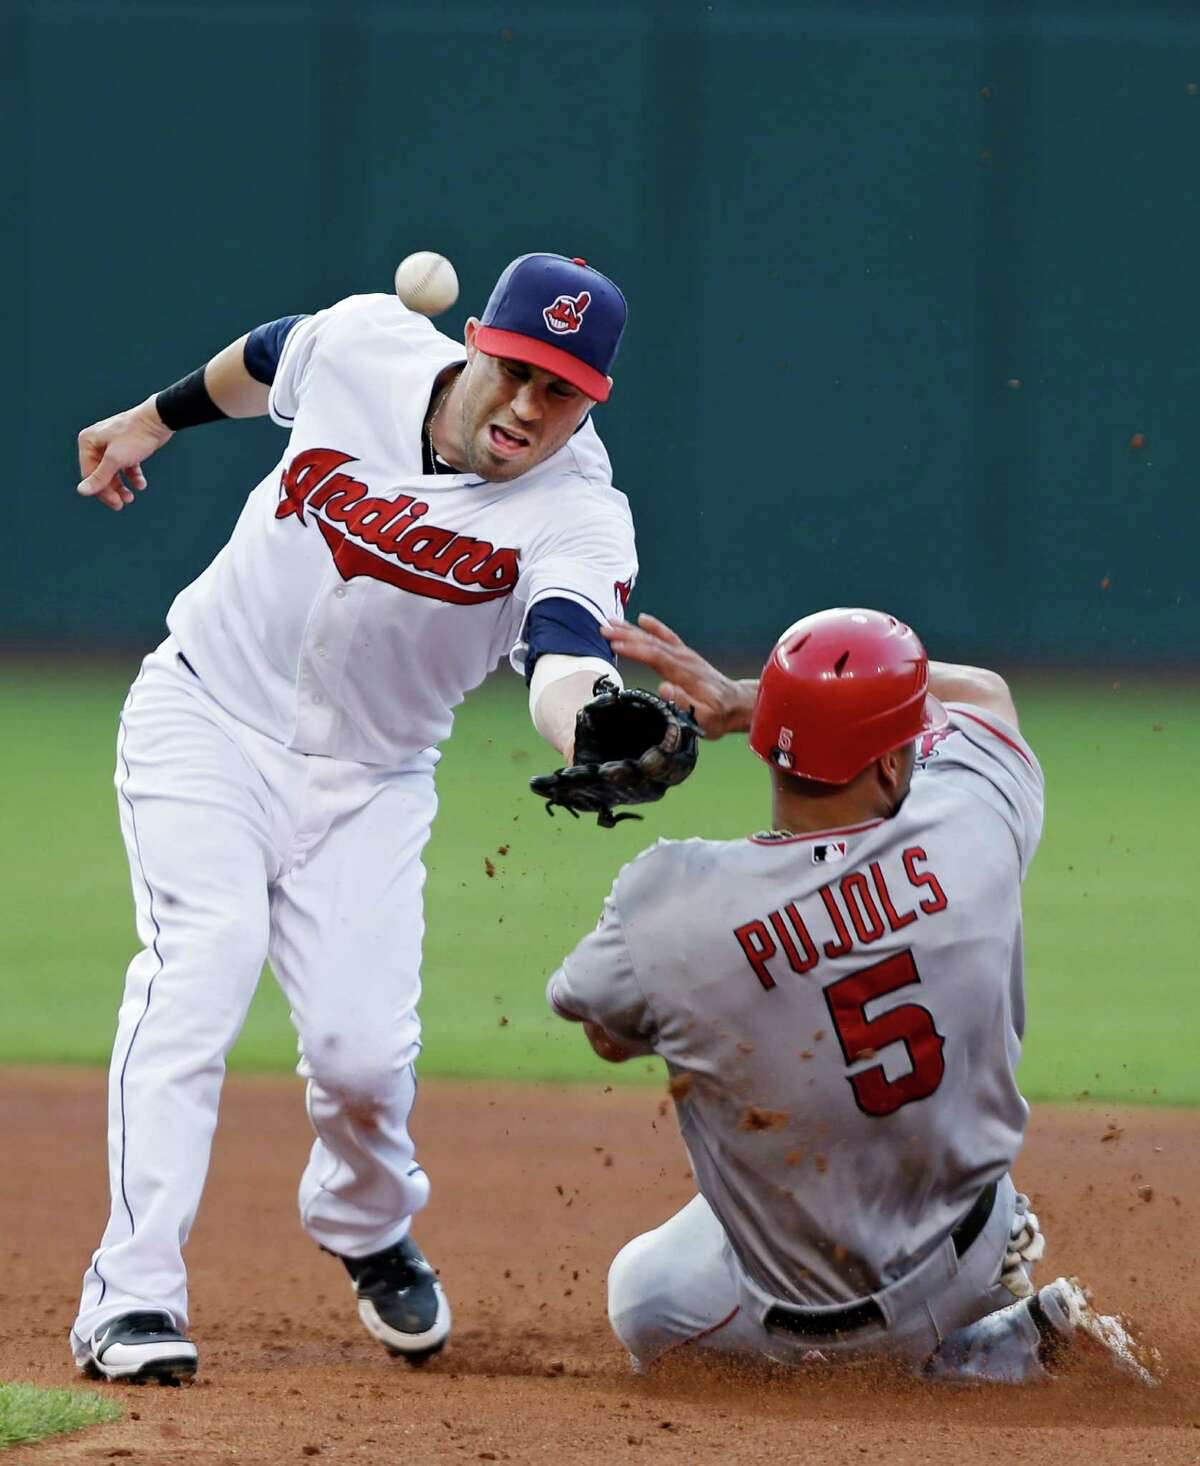 Los Angeles Angels' Albert Pujols (5) steals second base as the throw hits his shoulder and ricochets past Cleveland Indians second baseman Jason Kipnis in the fourth inning of a baseball game Monday, July 2, 2012, in Cleveland.